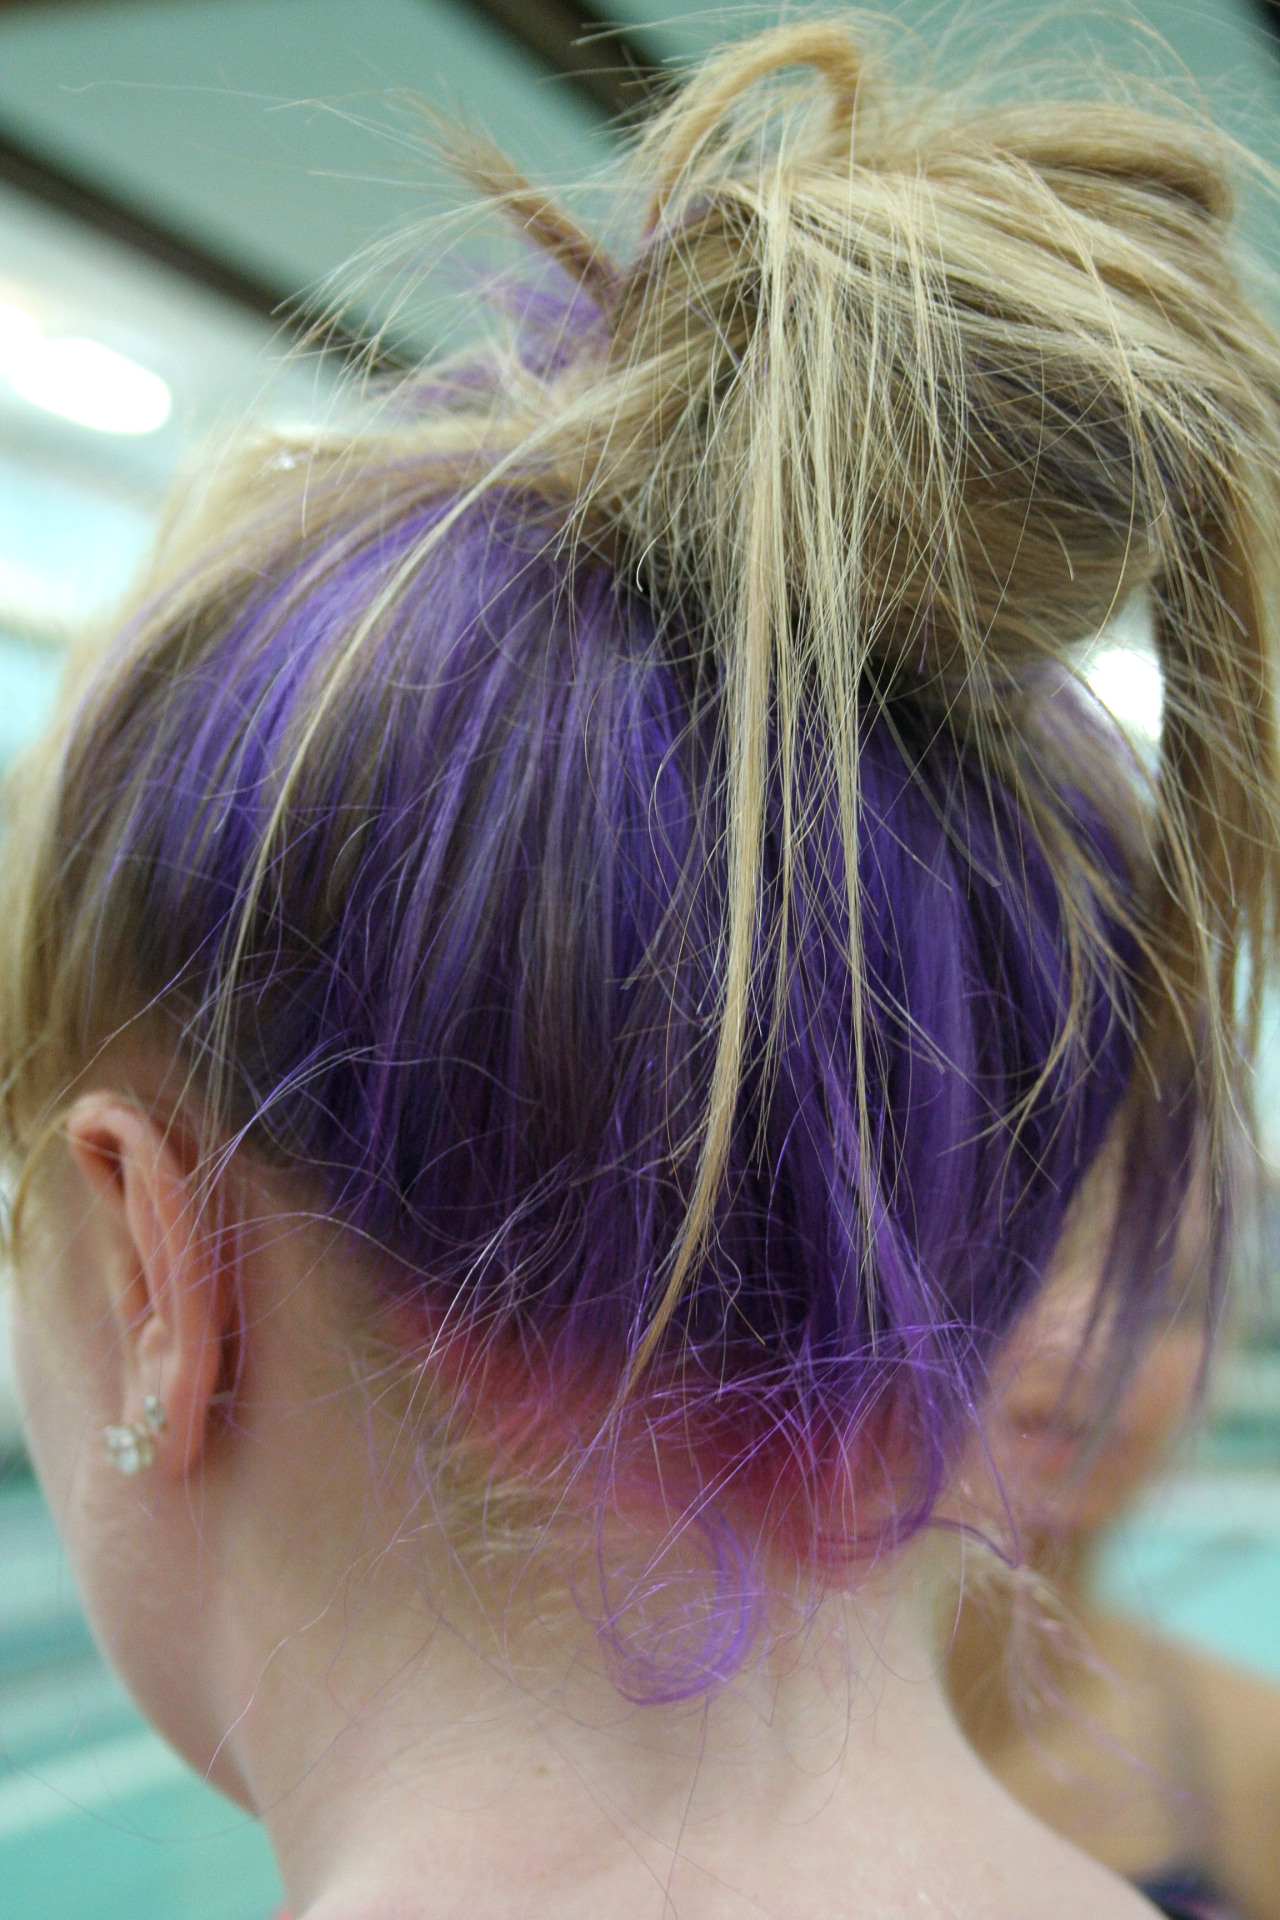 This girl on my swim team has purple hair too!